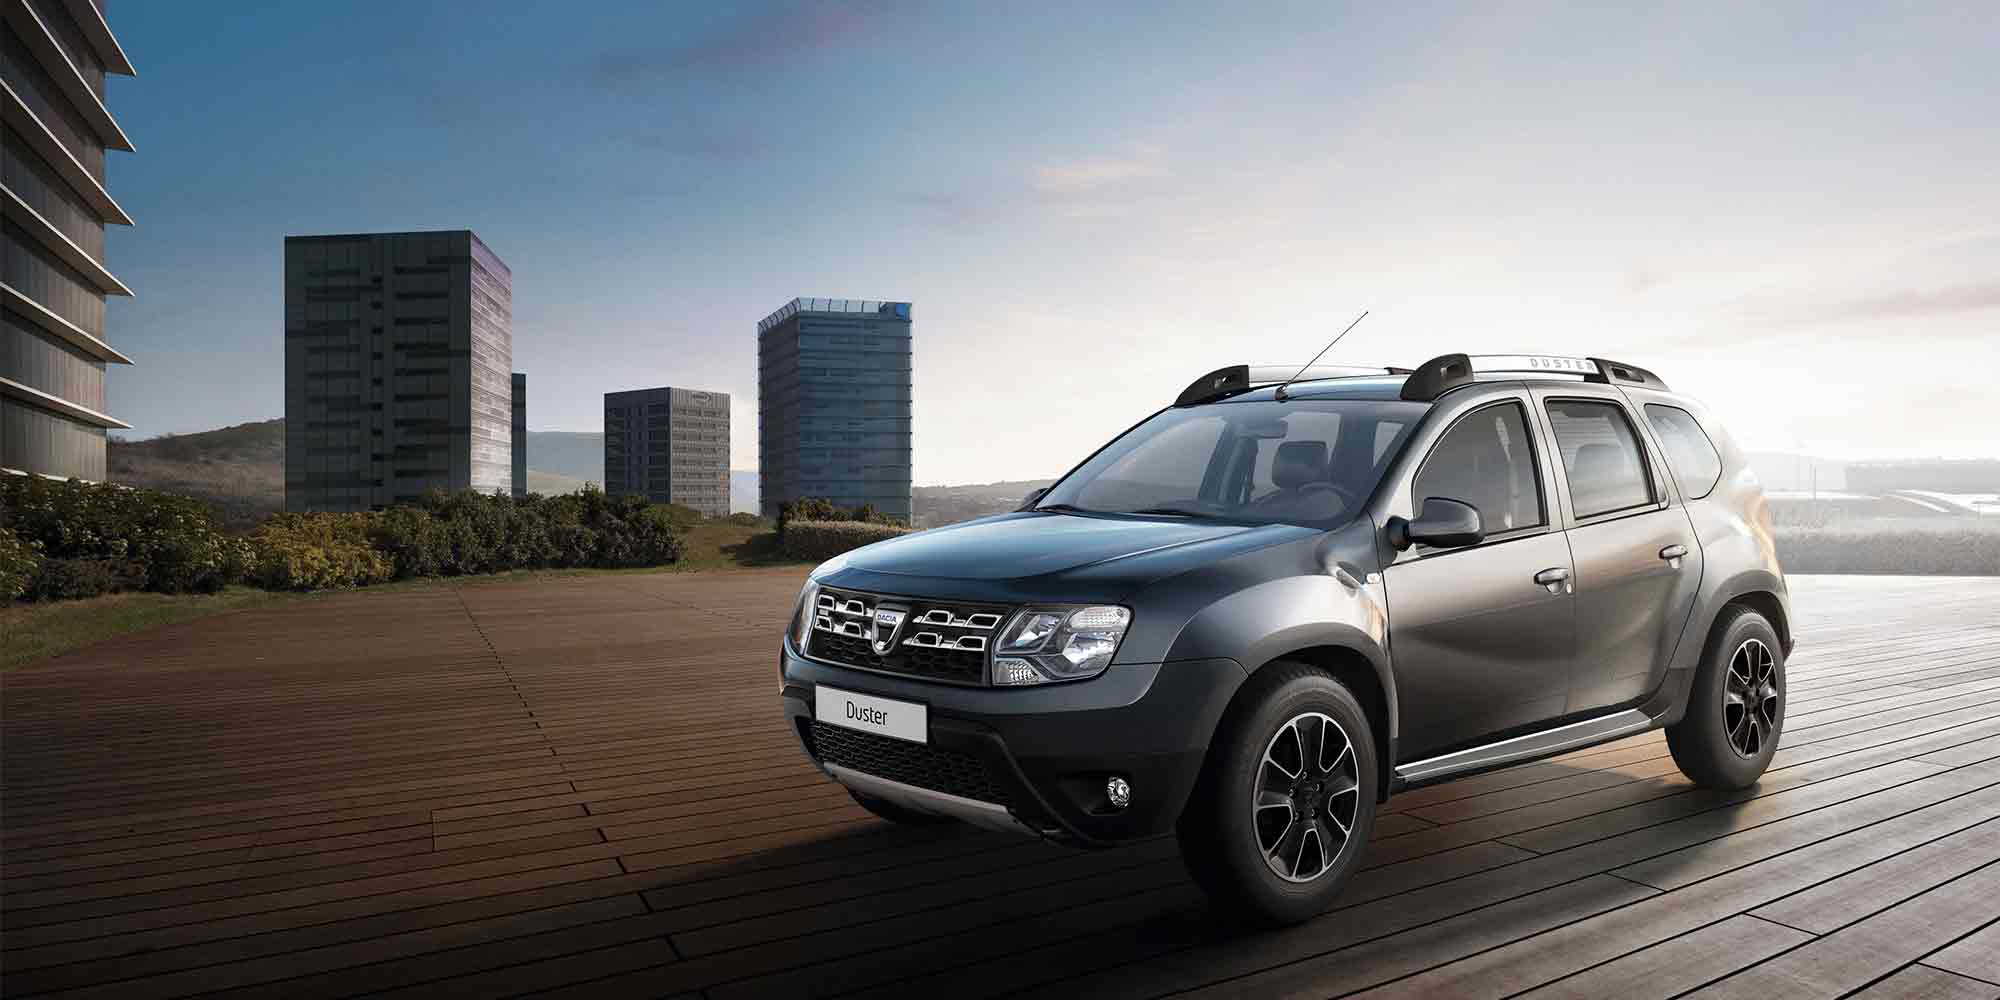 82 A Dacia Duster 2020 Price And Release Date